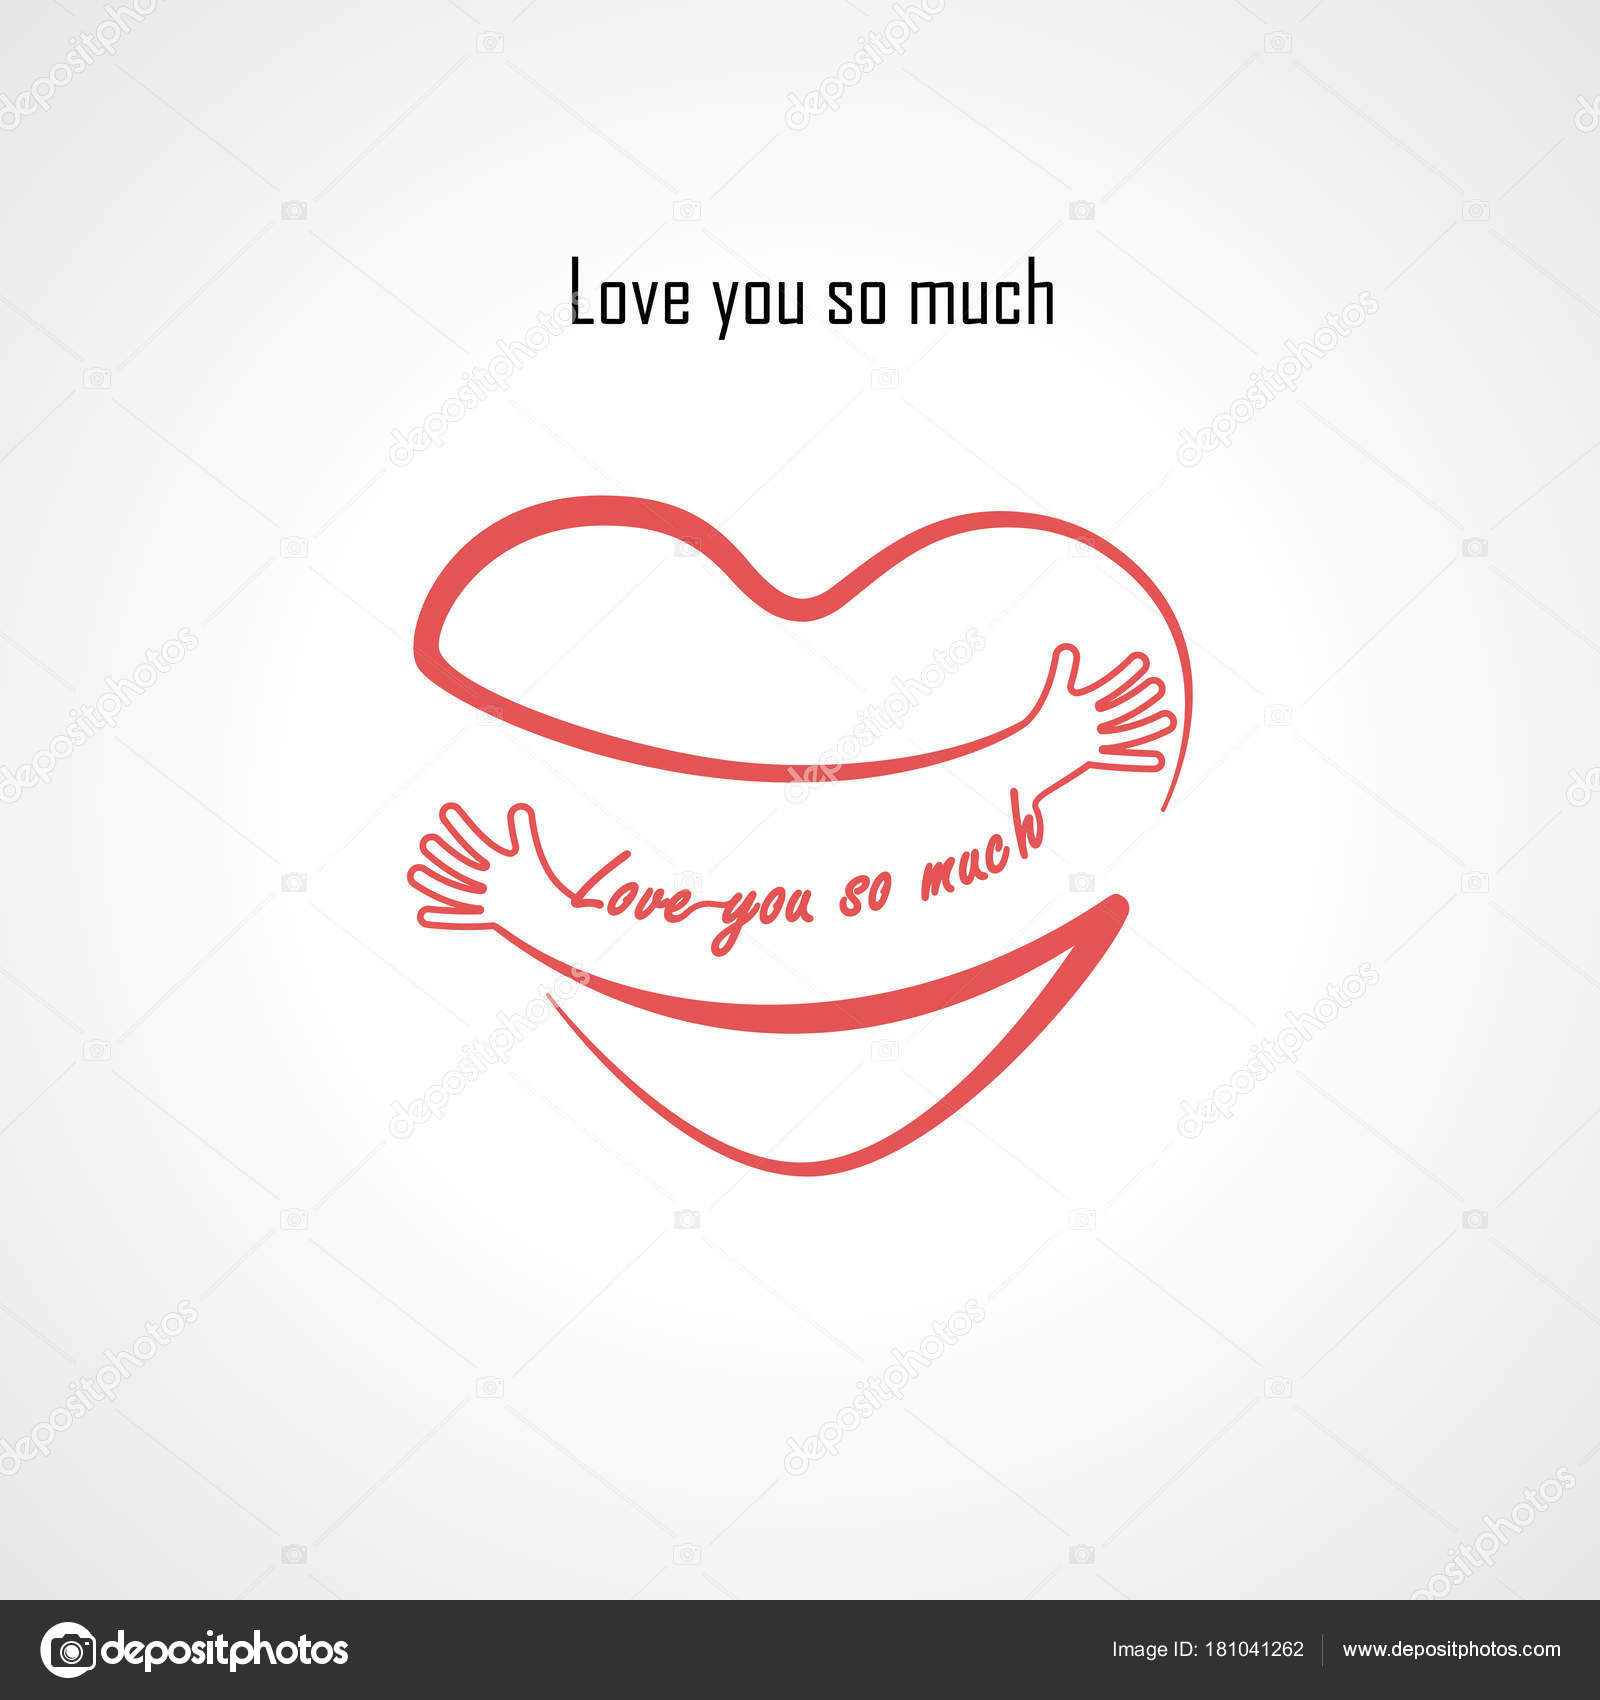 Love You So Much Typographical Design Elements And Red Heart S